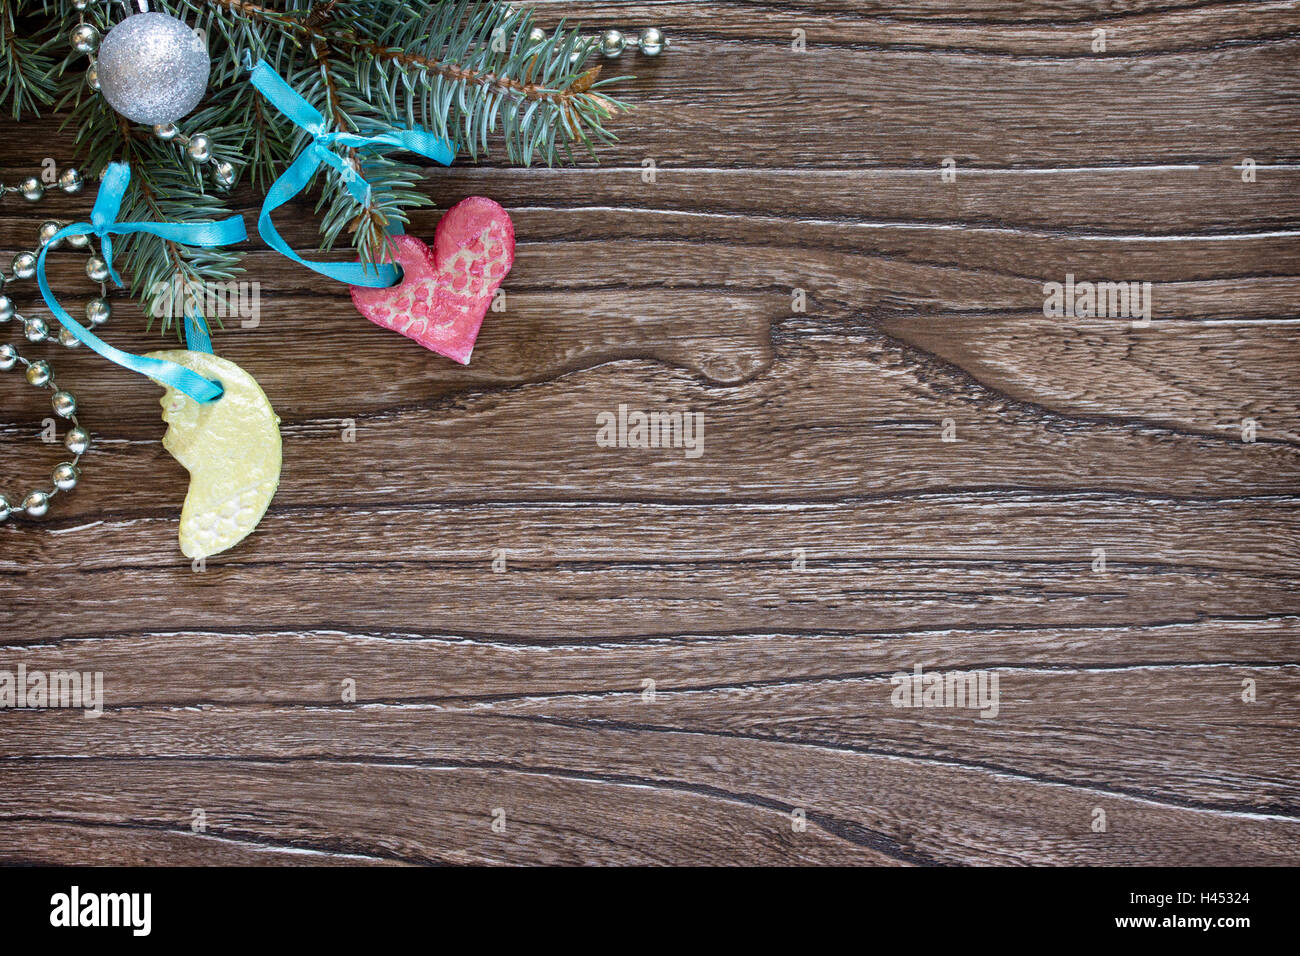 Christmas Frame Tree Branches And Toys Made Of Salt Dough On Wooden Background With Copy Space